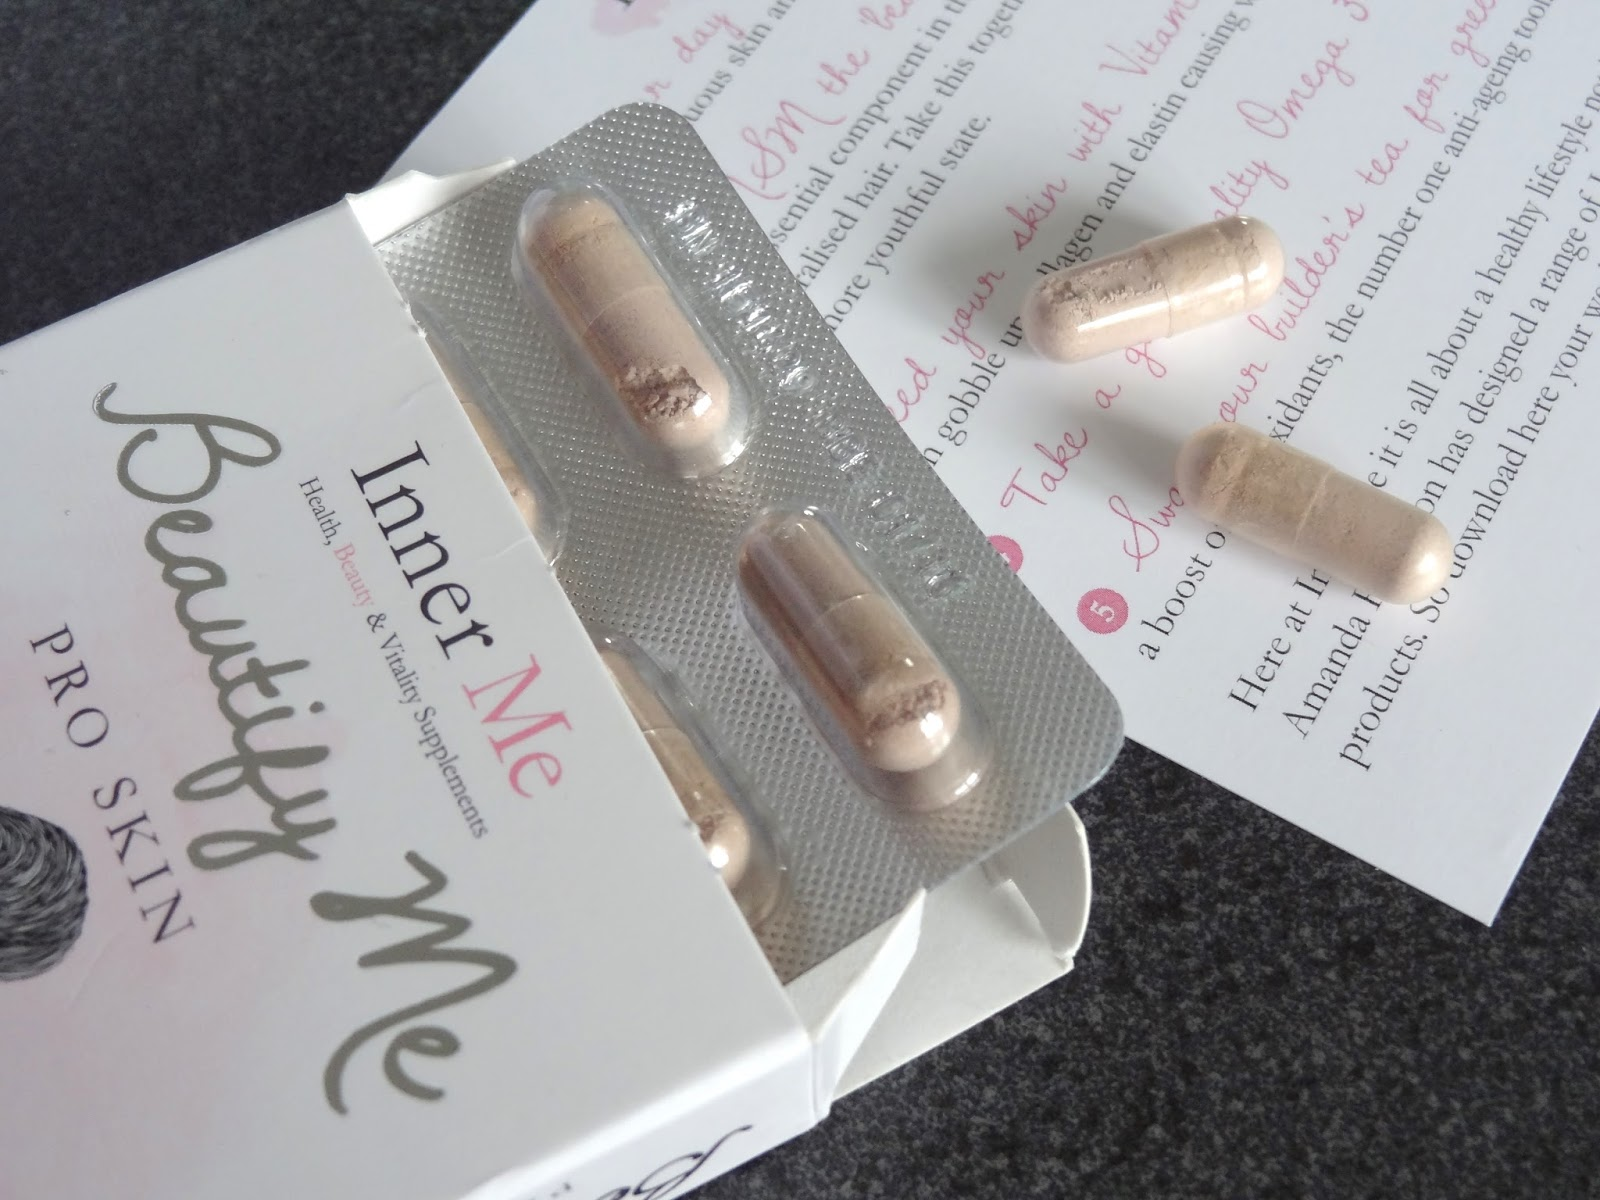 Inner Me Supplement Beautify Me Pro Skin